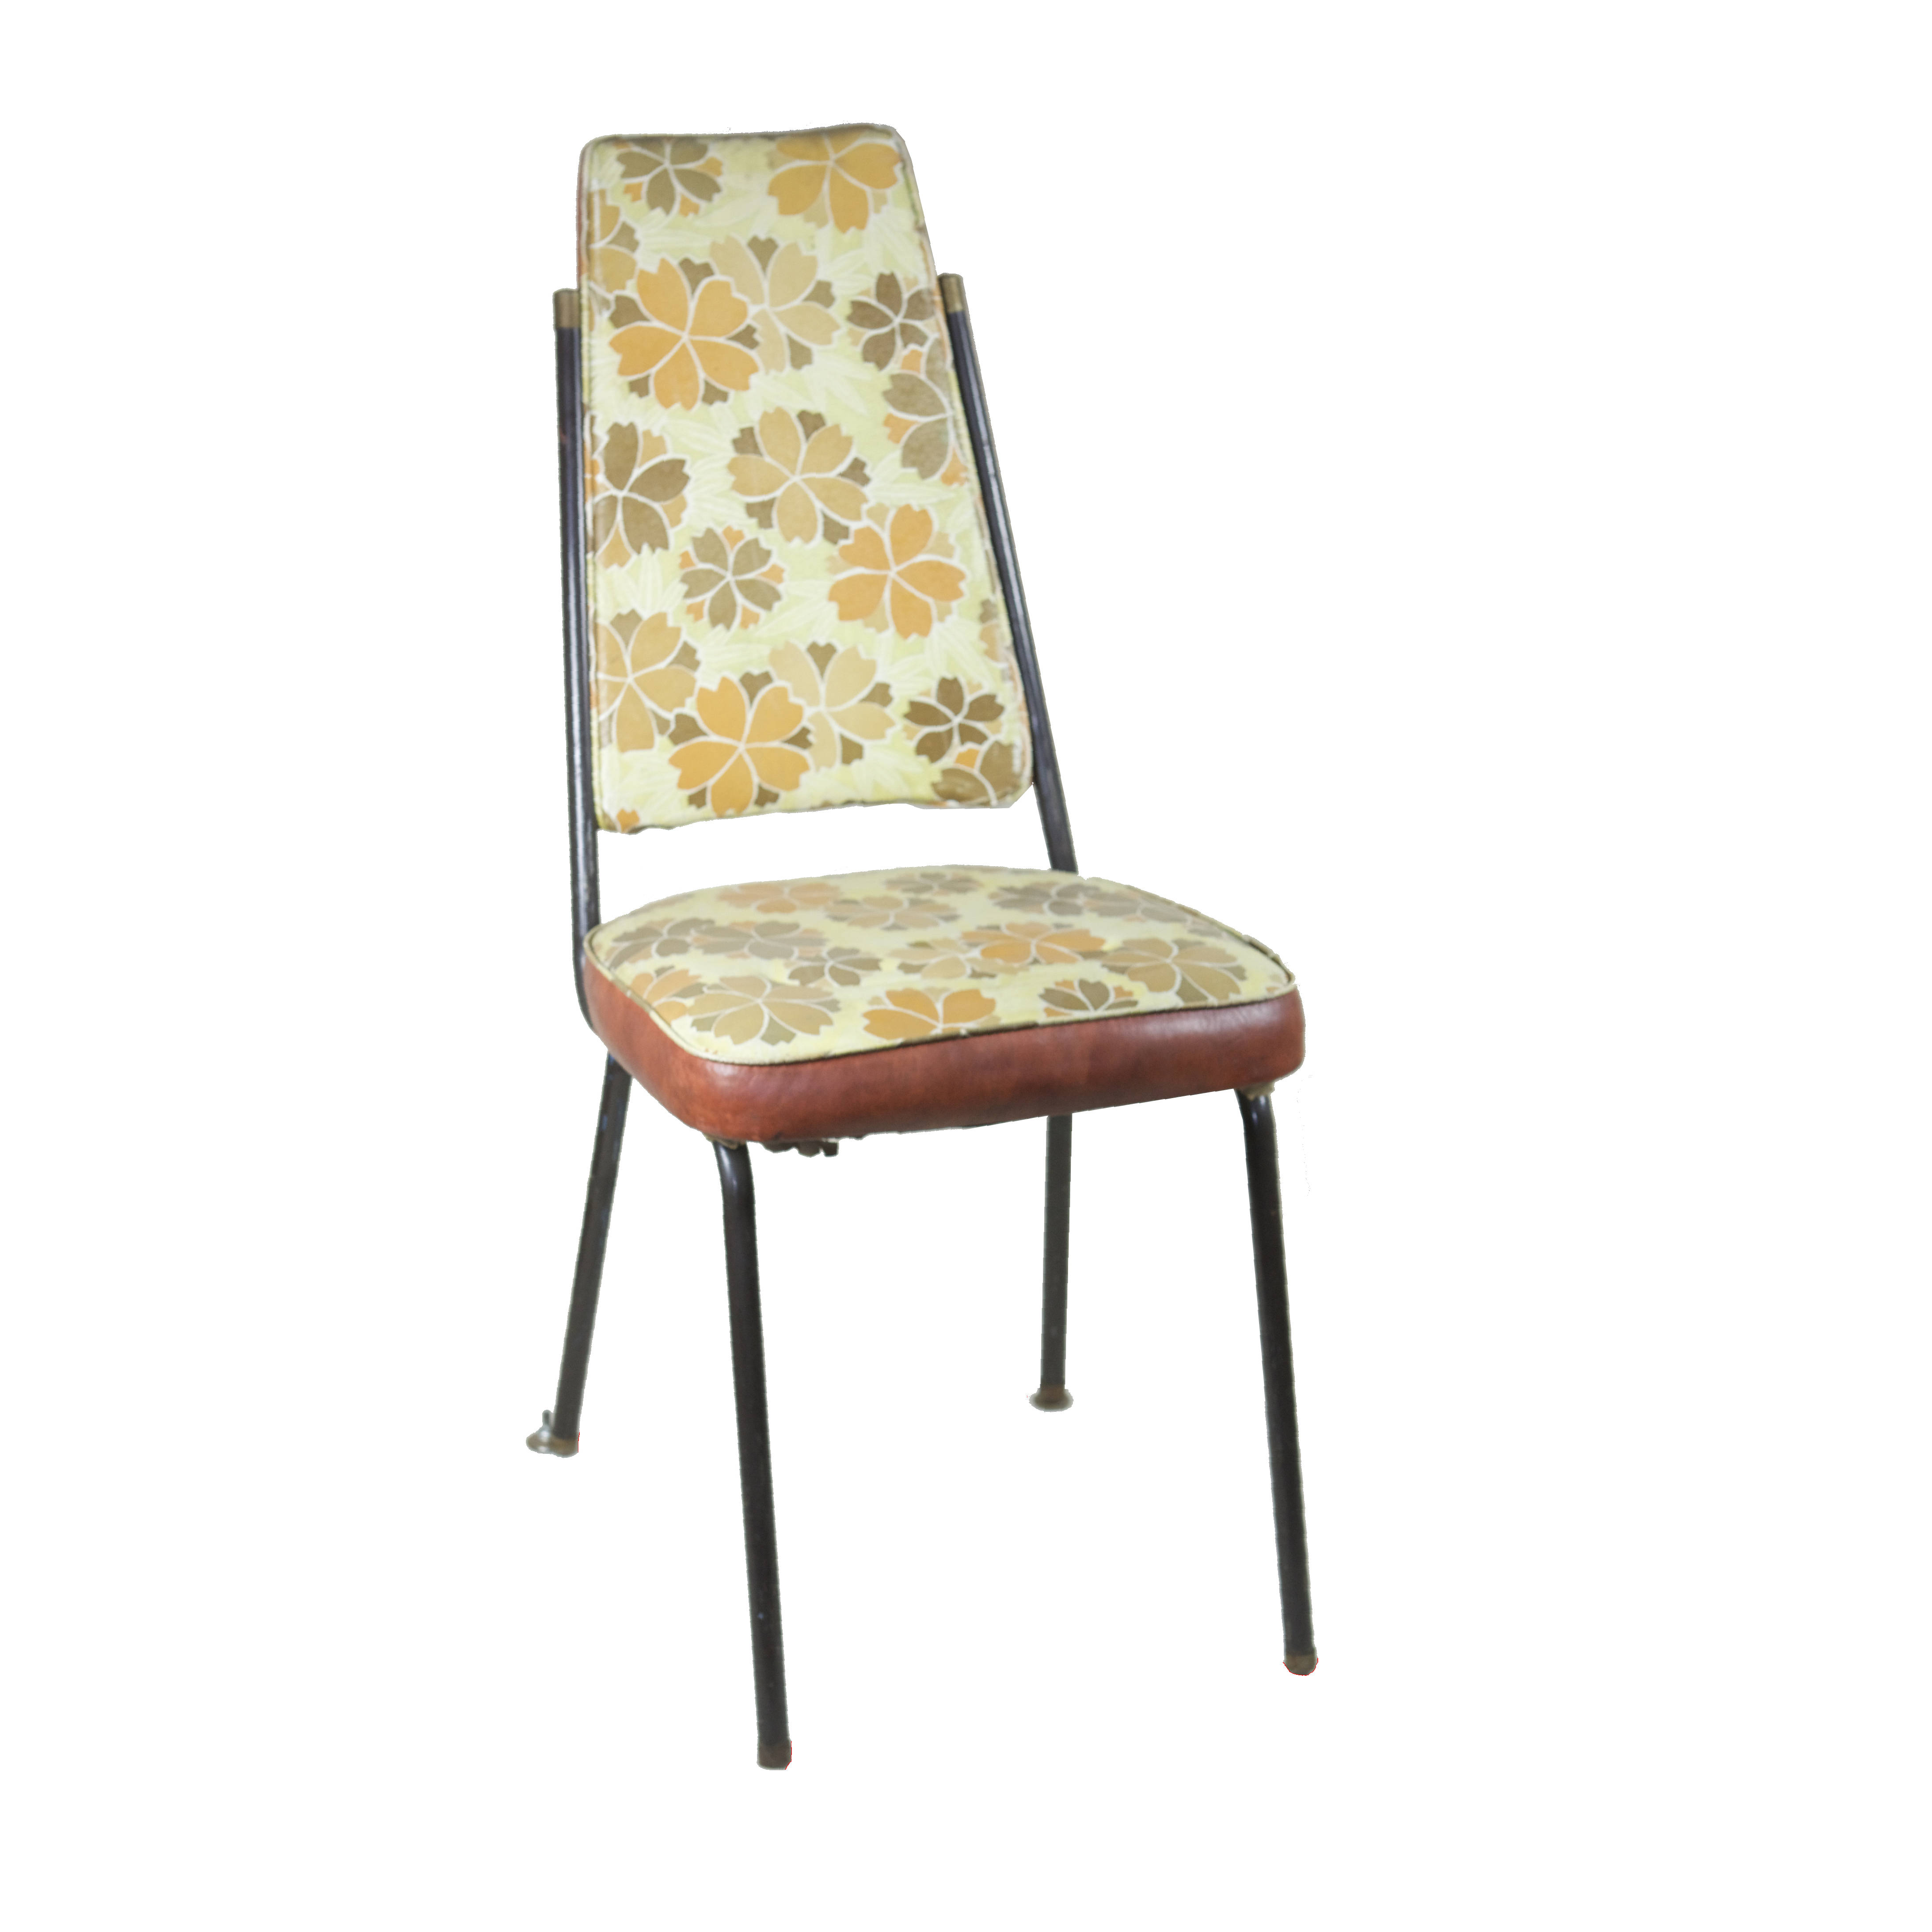 Chair 60s style yellow floral pattern air designs for Sixties style chairs